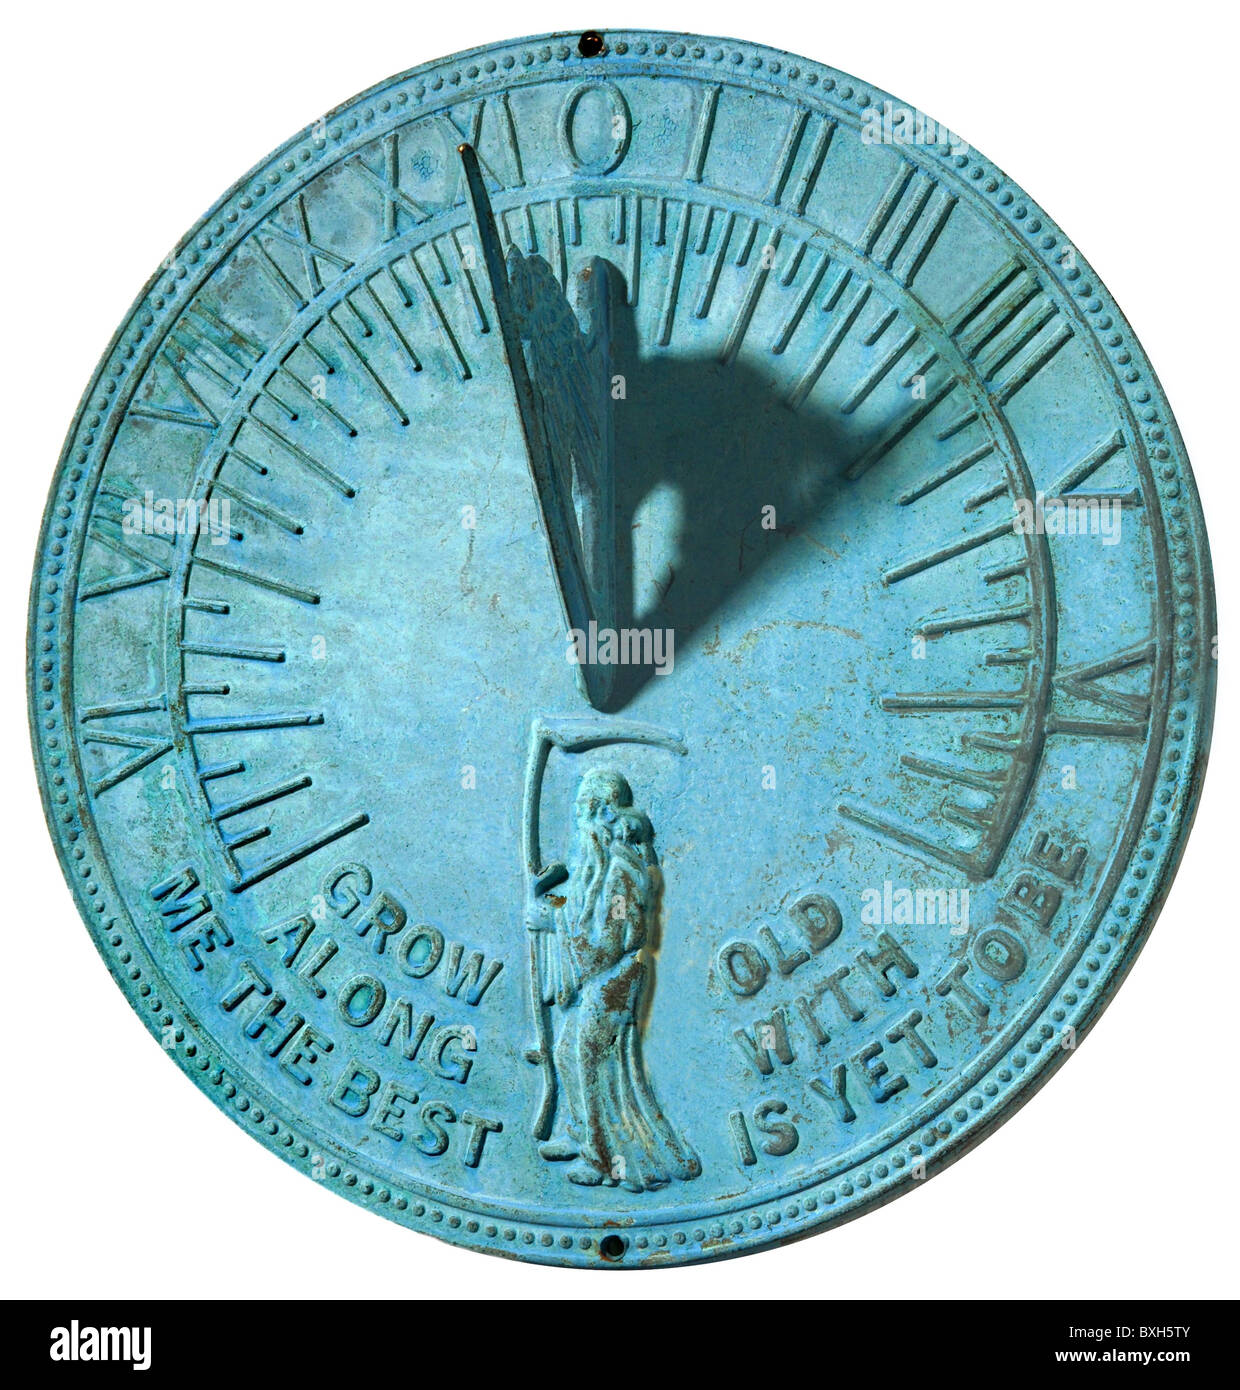 clocks, sundials, English sundial, Great Britain, 19th century, historic, historical, motto, saying, time, time - Stock Image